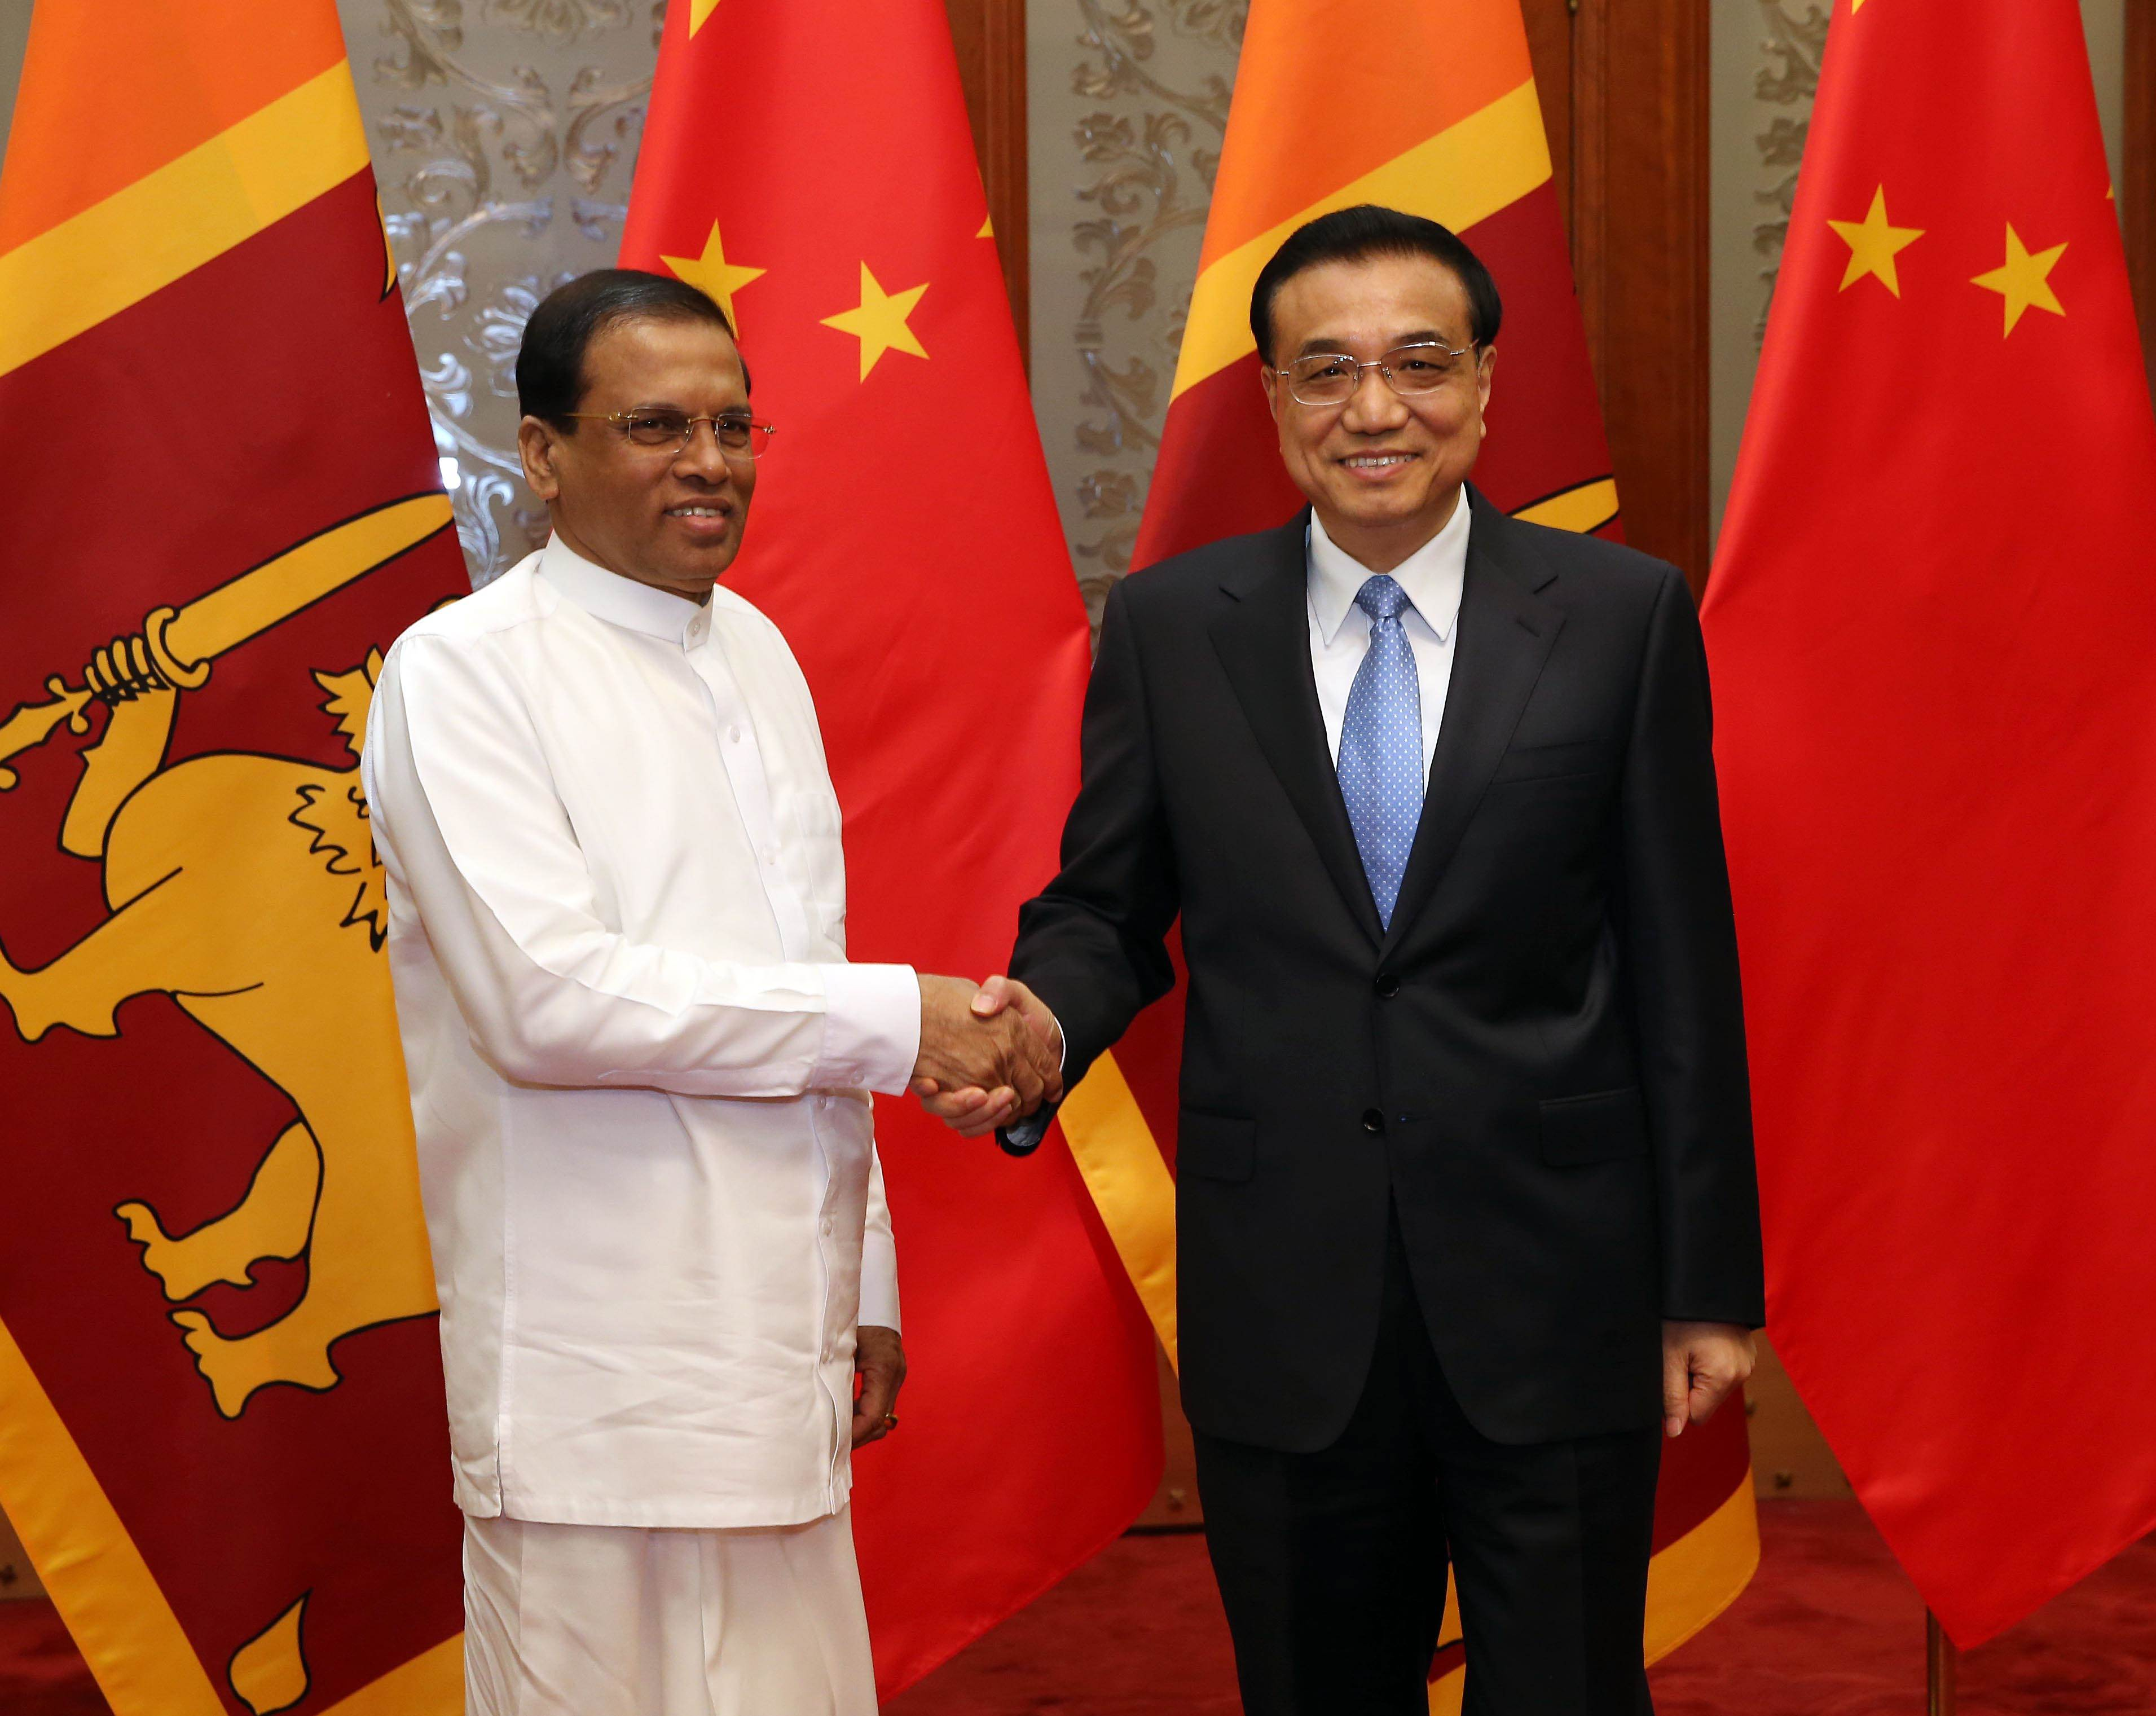 China S Debt Trap Diplomacy By Brahma Chellaney Project border=